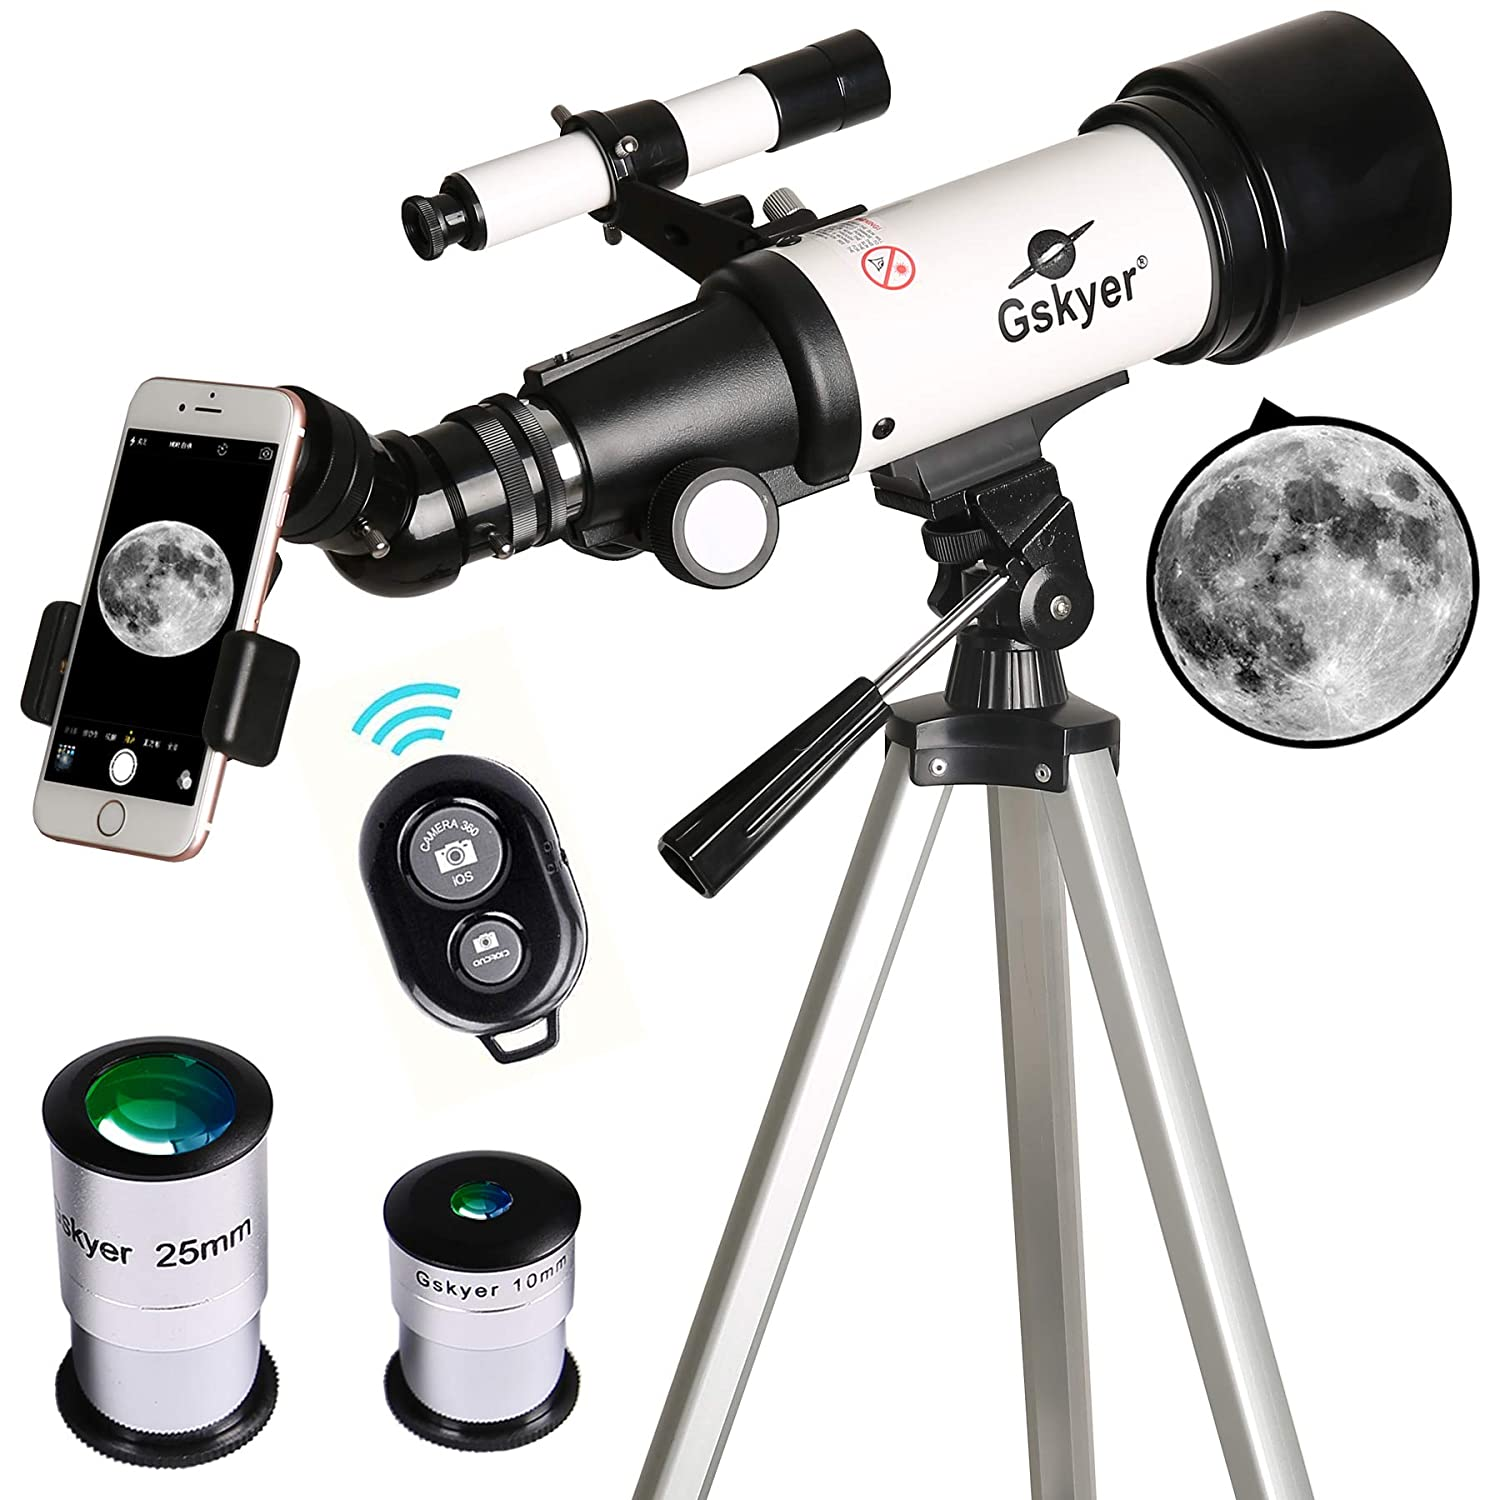 Gskyer 70mm best beginner telescope